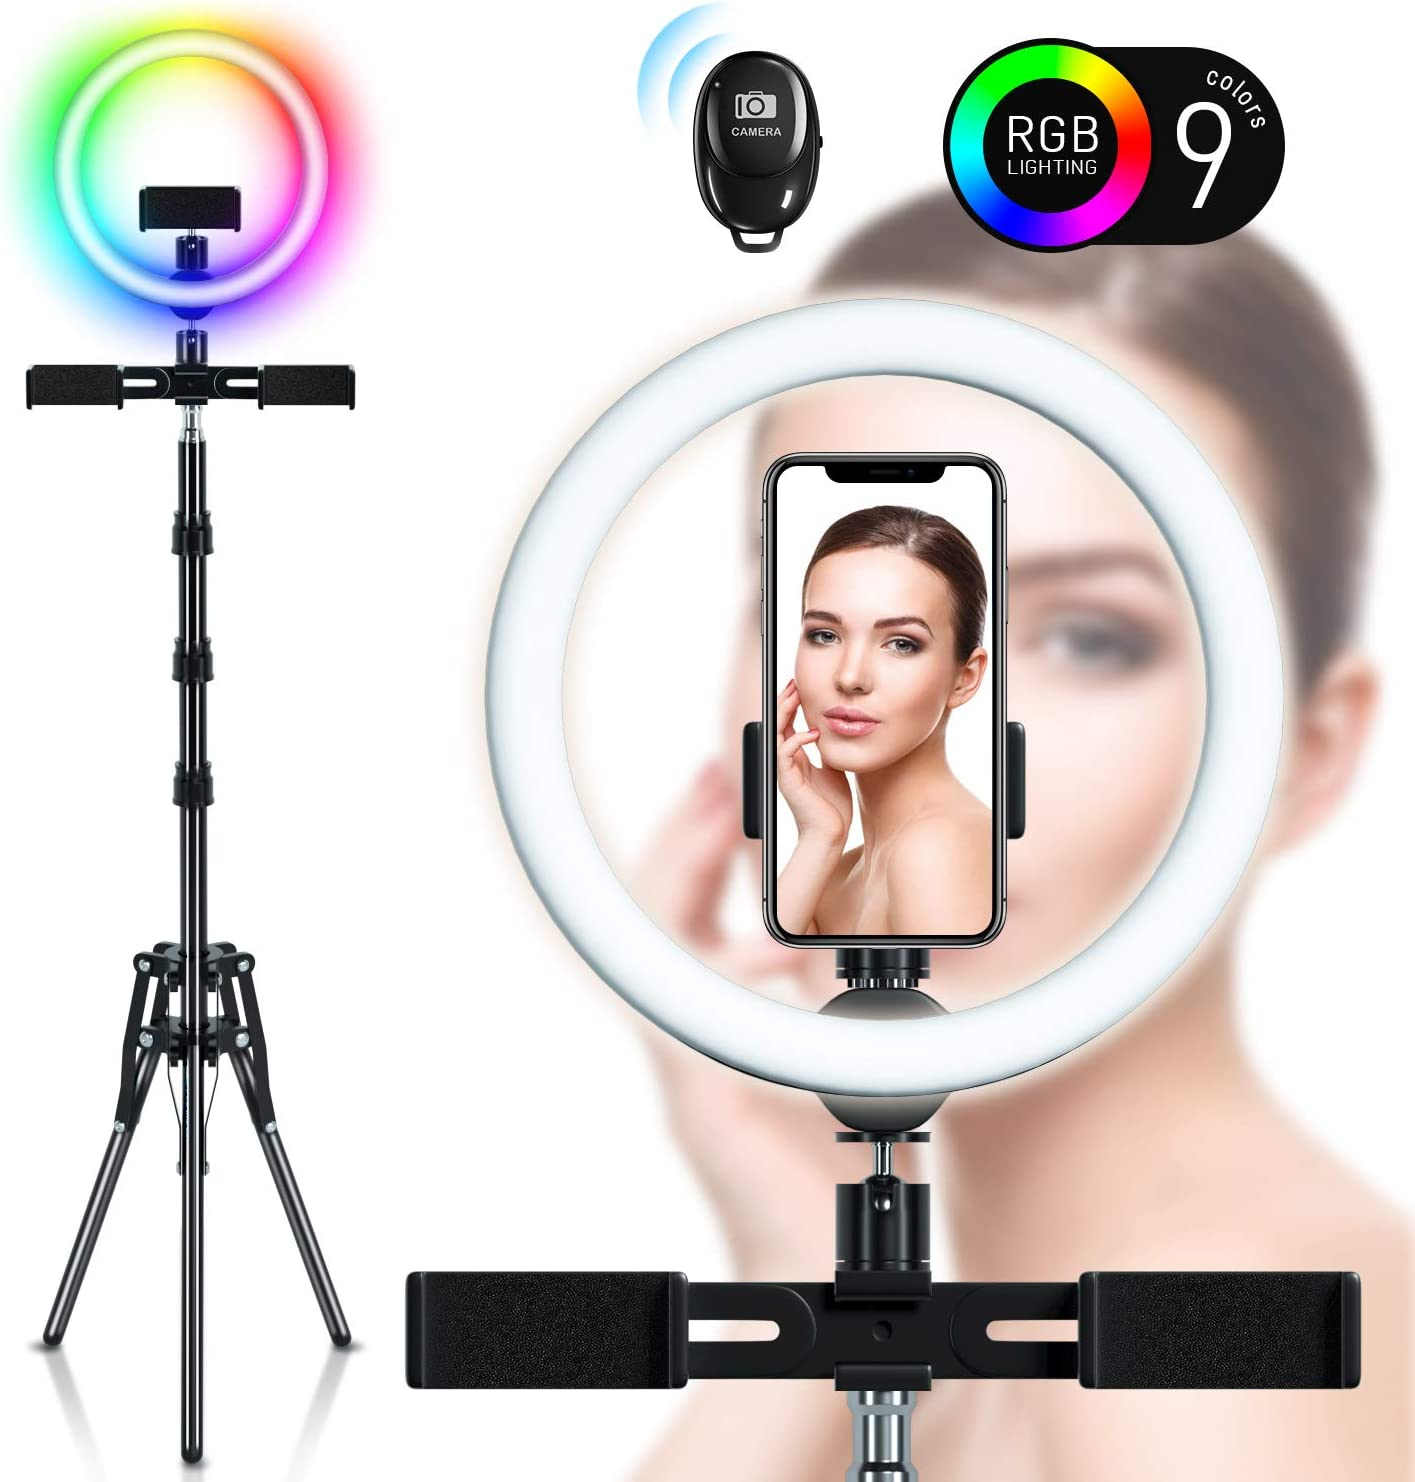 YouTube Video 10/'/' Selfie Light Ring LED Ring Light with Tripod Stand /& Phone Holder 9 Colors 11 Brightness Levels Standing Floor Light Halo Light with 3 Phone Holders for Live Streaming Vlog